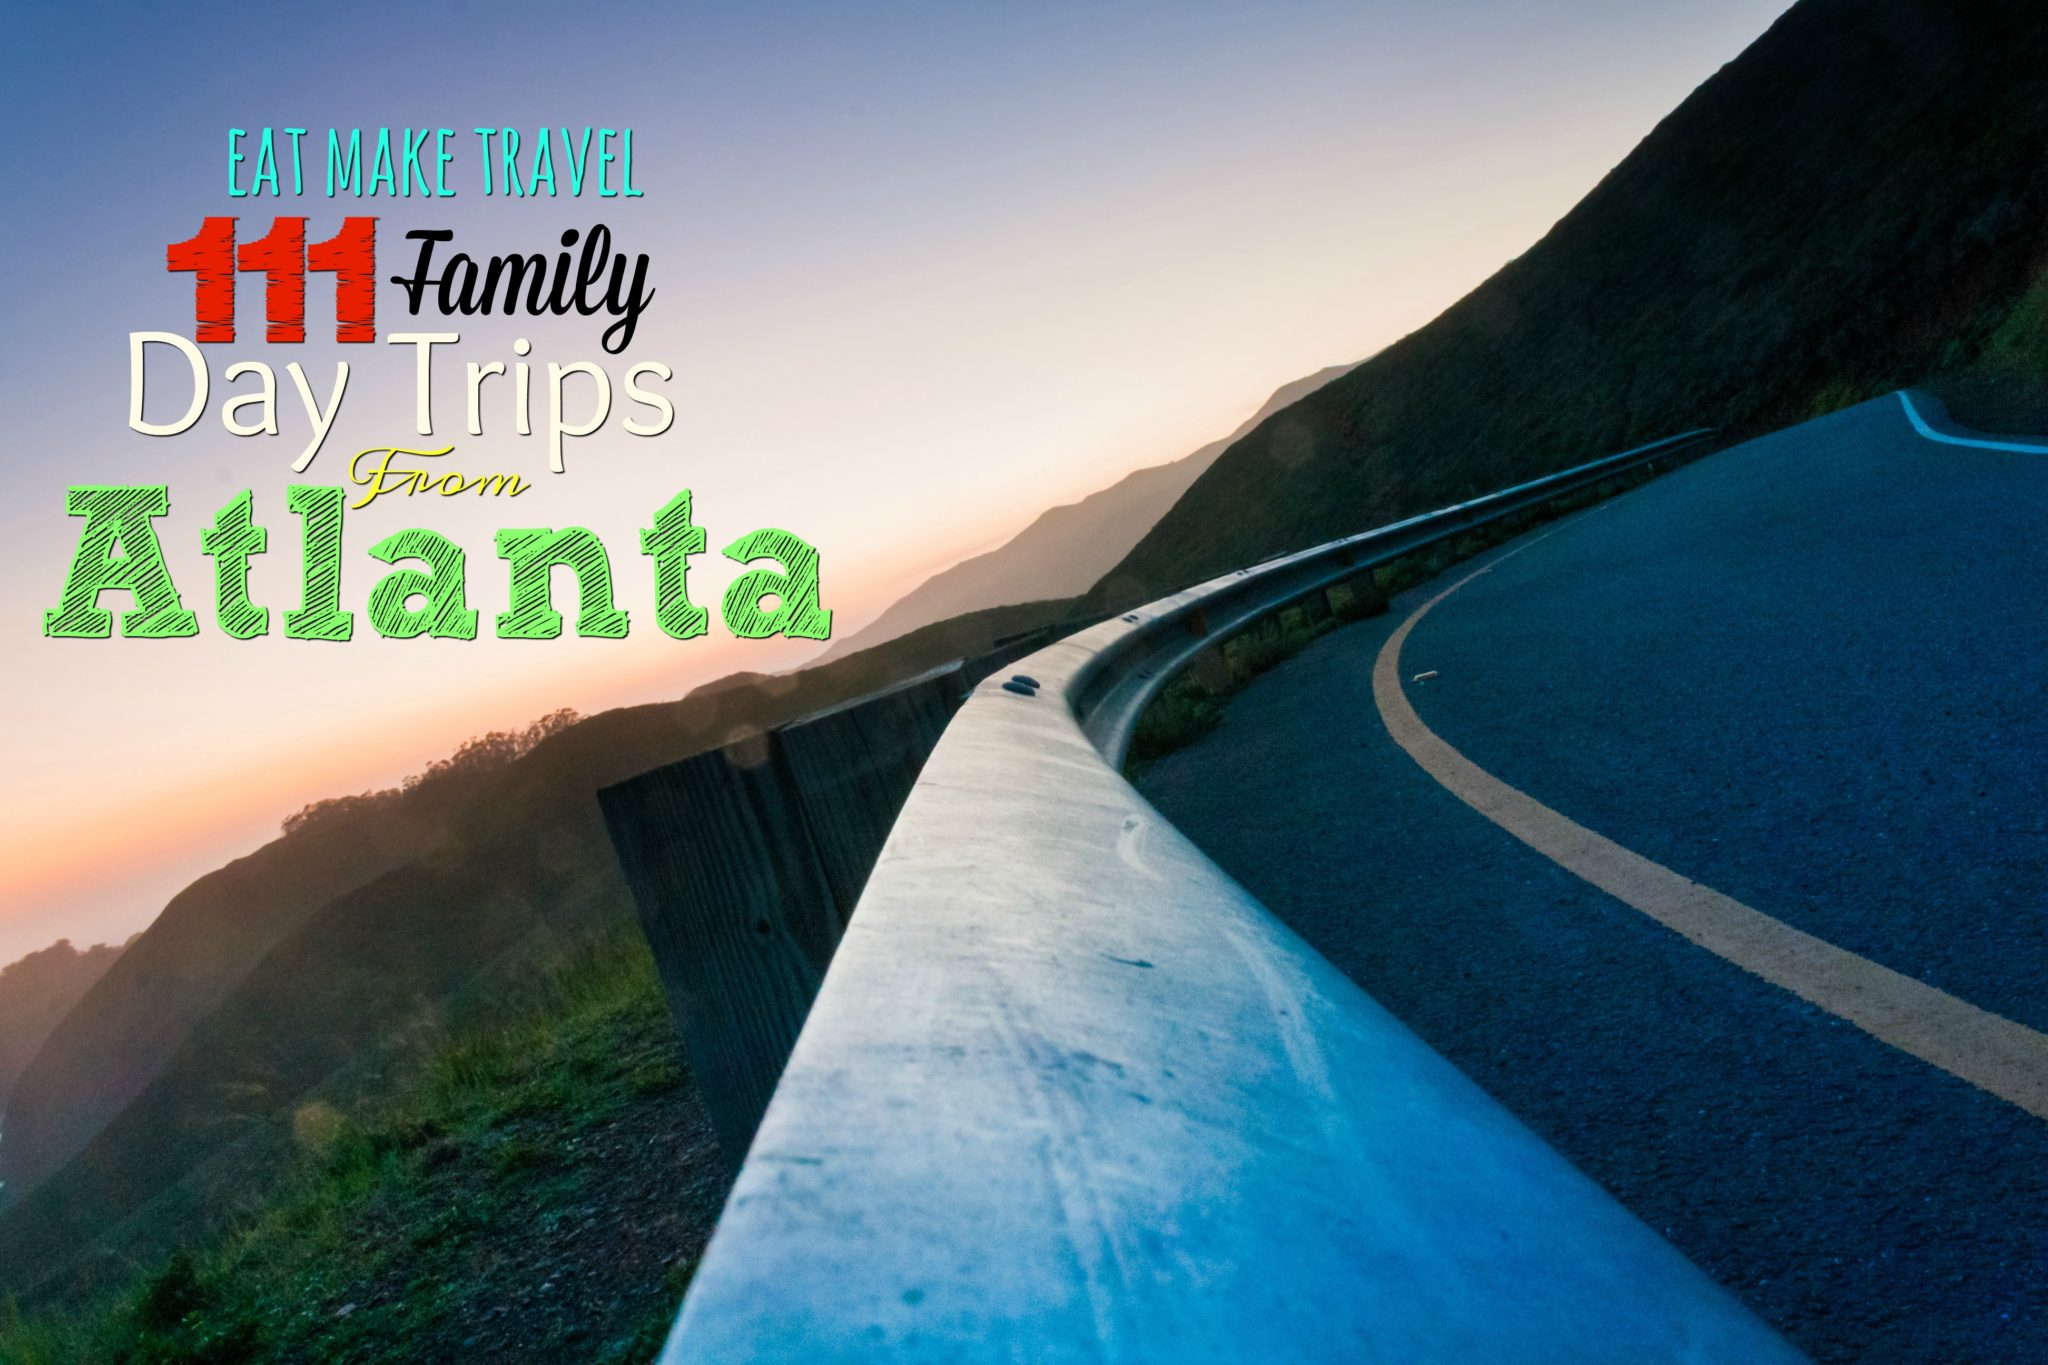 111 Family Day Trips from Atlanta!